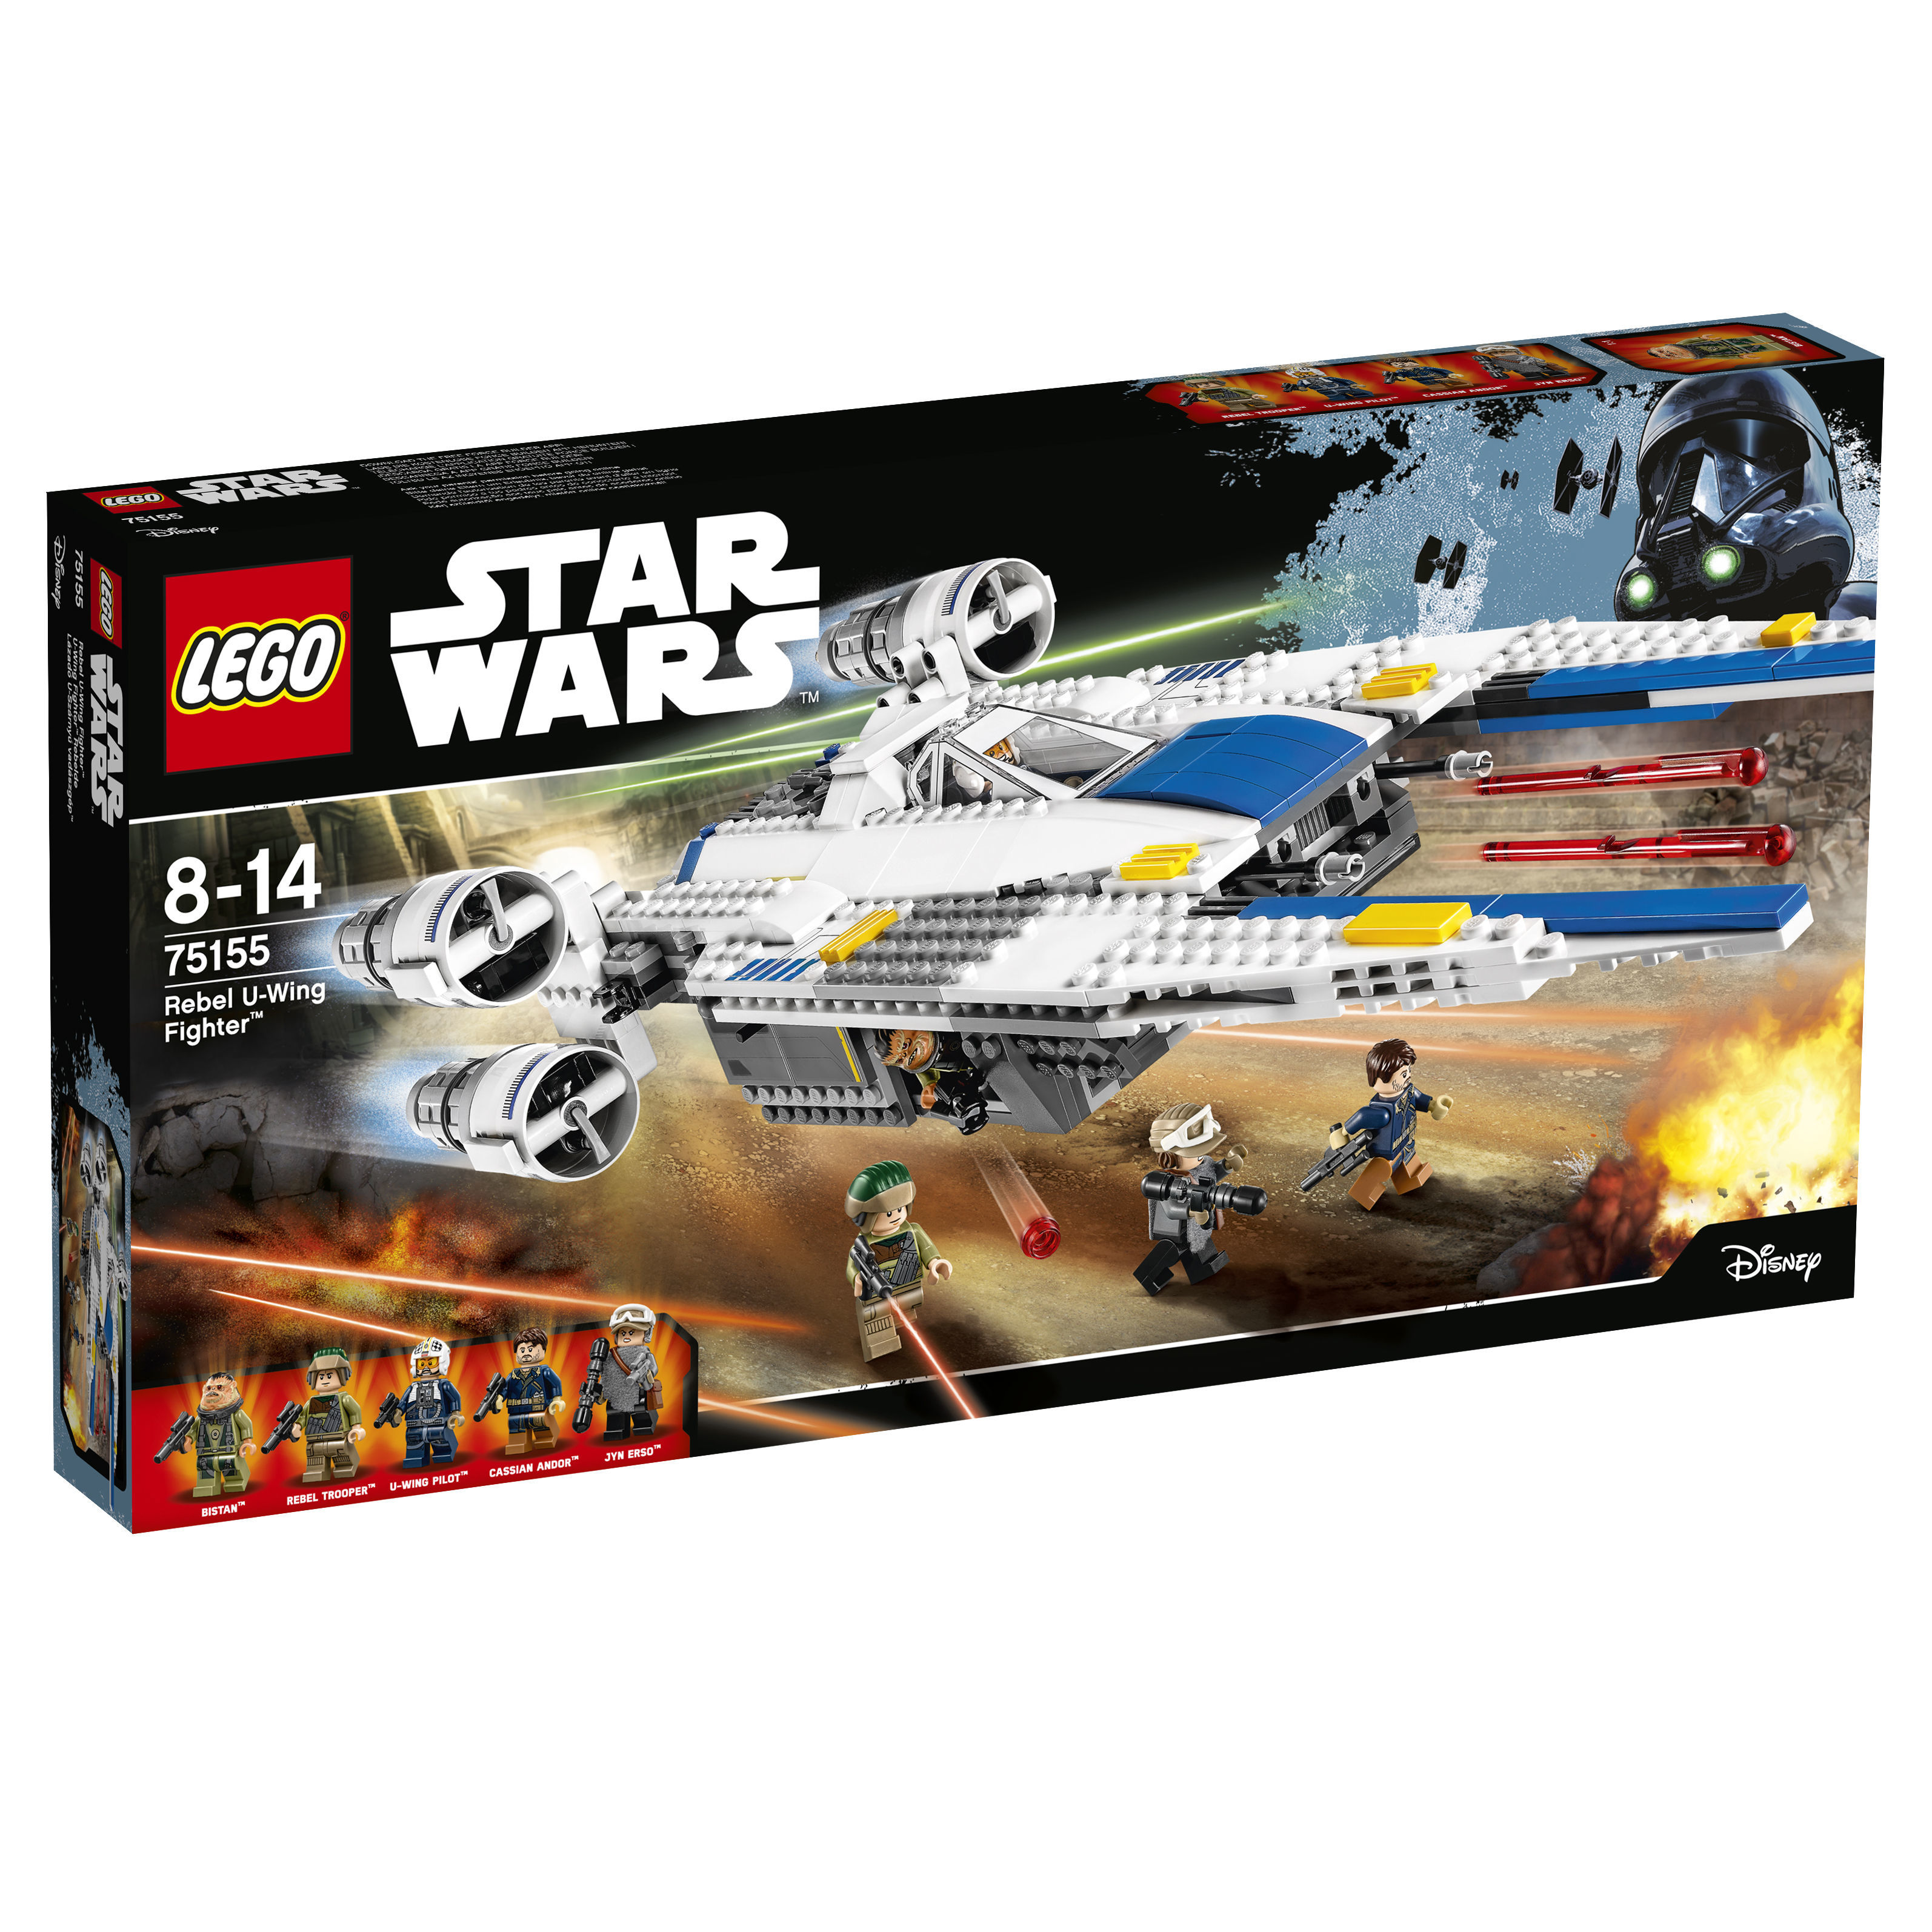 Rebel U-Wing Fighter™ - 75155